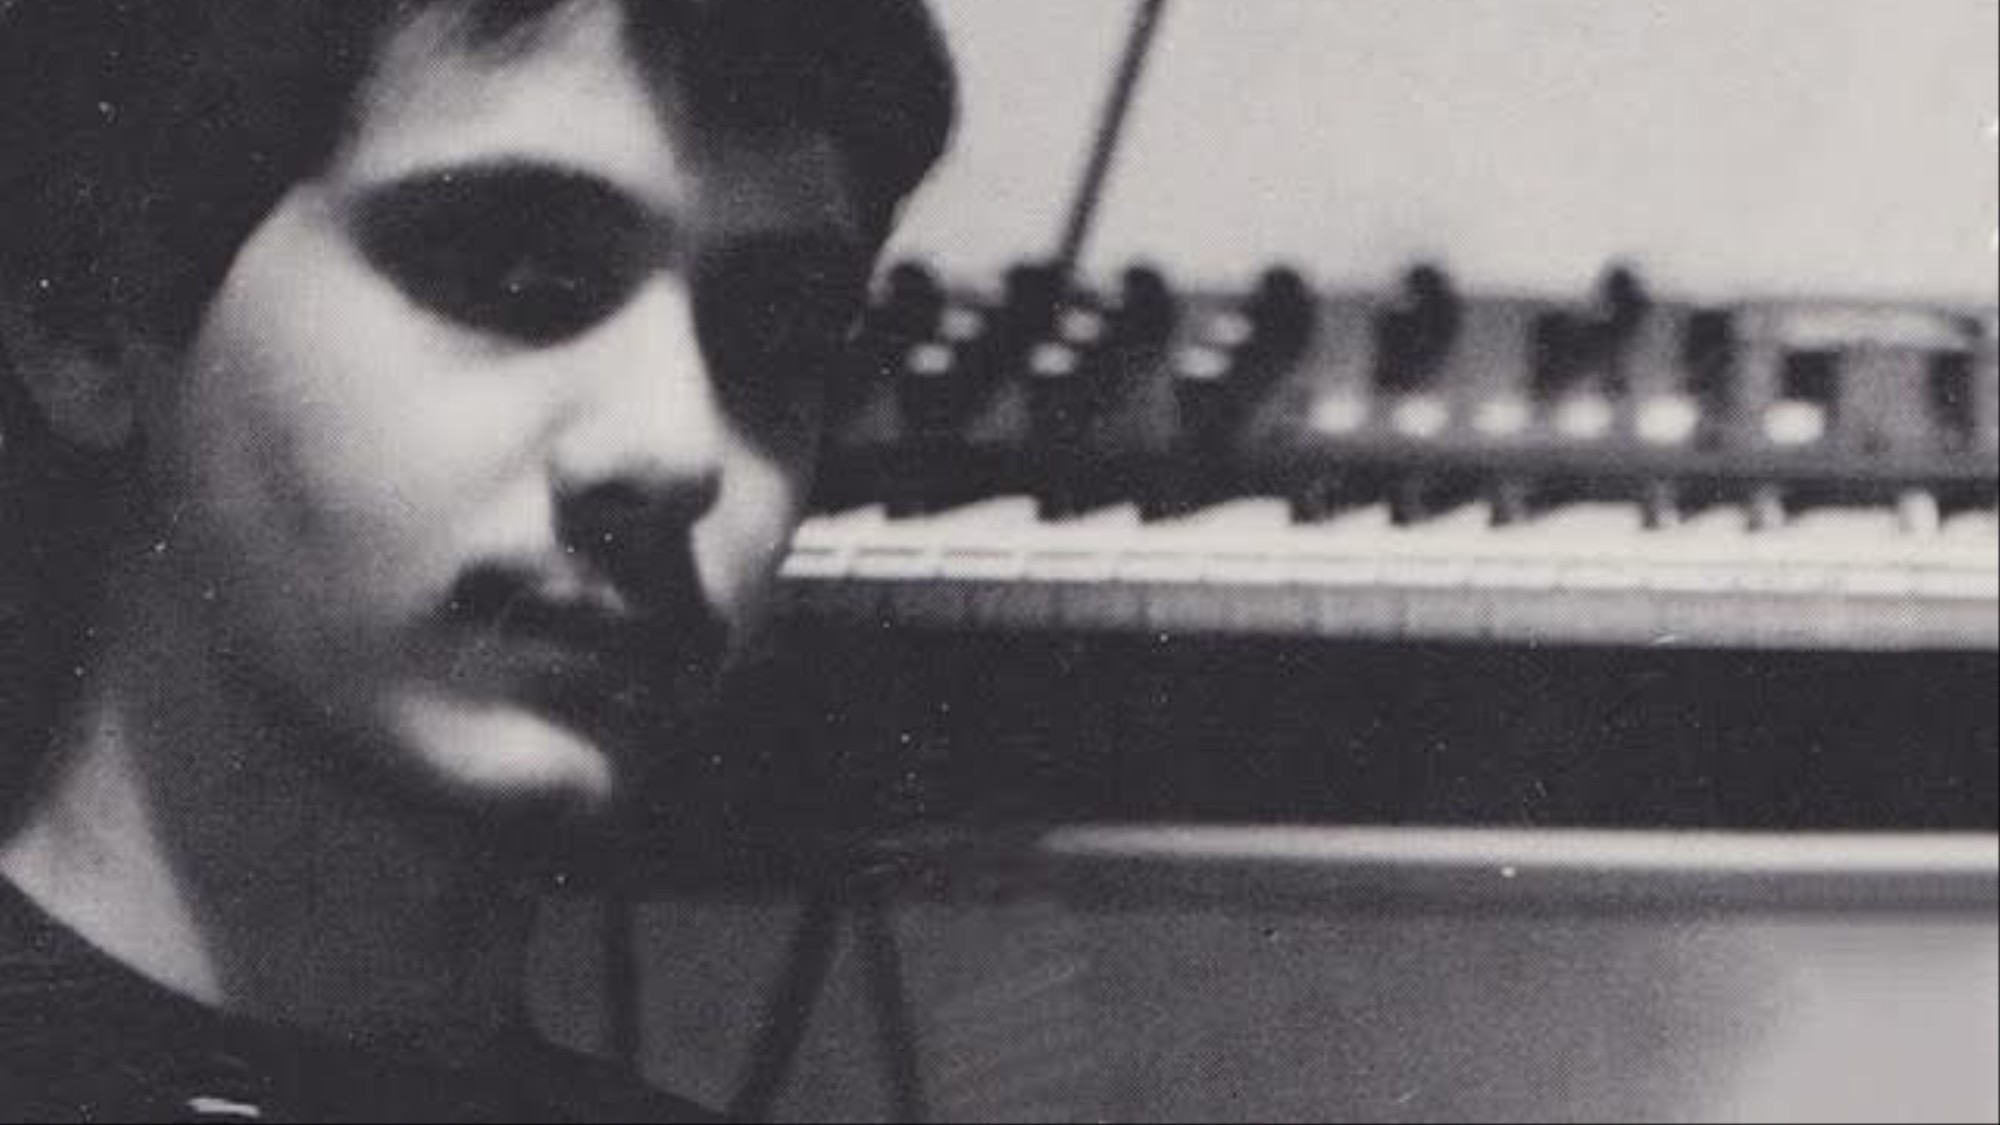 The Nightcrawlers Remain an Obscure but Fascinating 80s Electronic